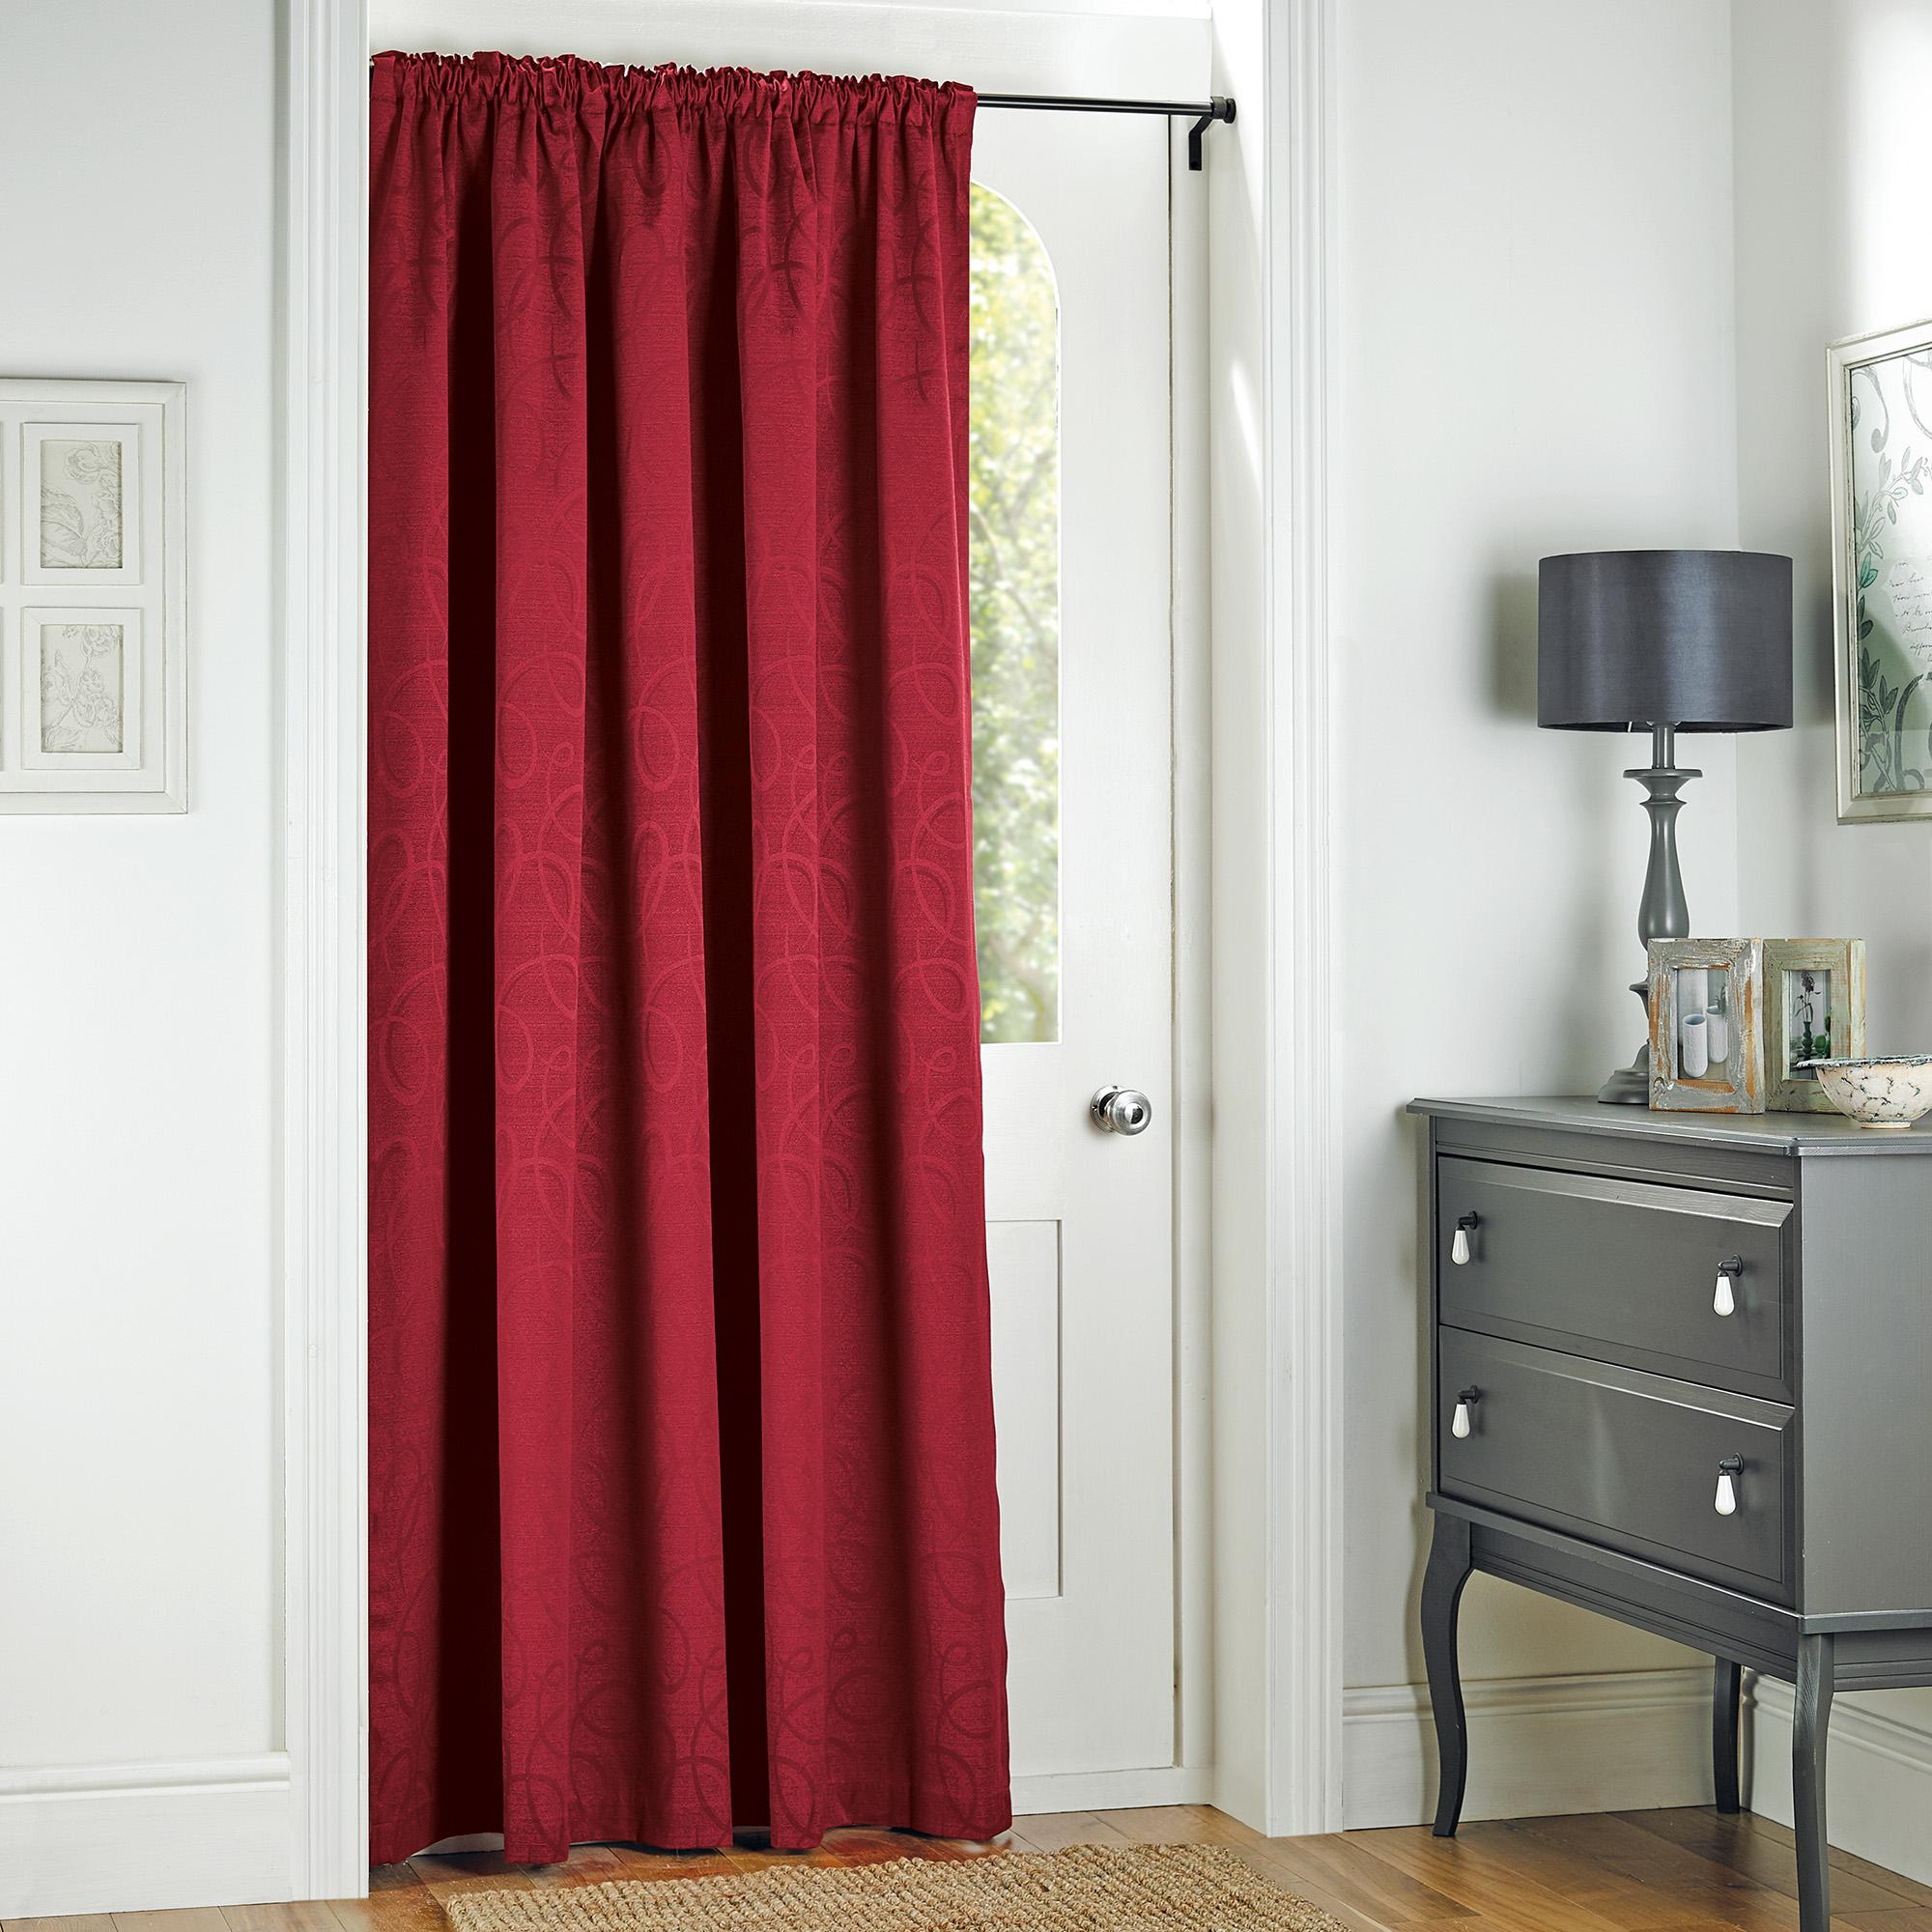 Keep your home warm with thermal door curtain